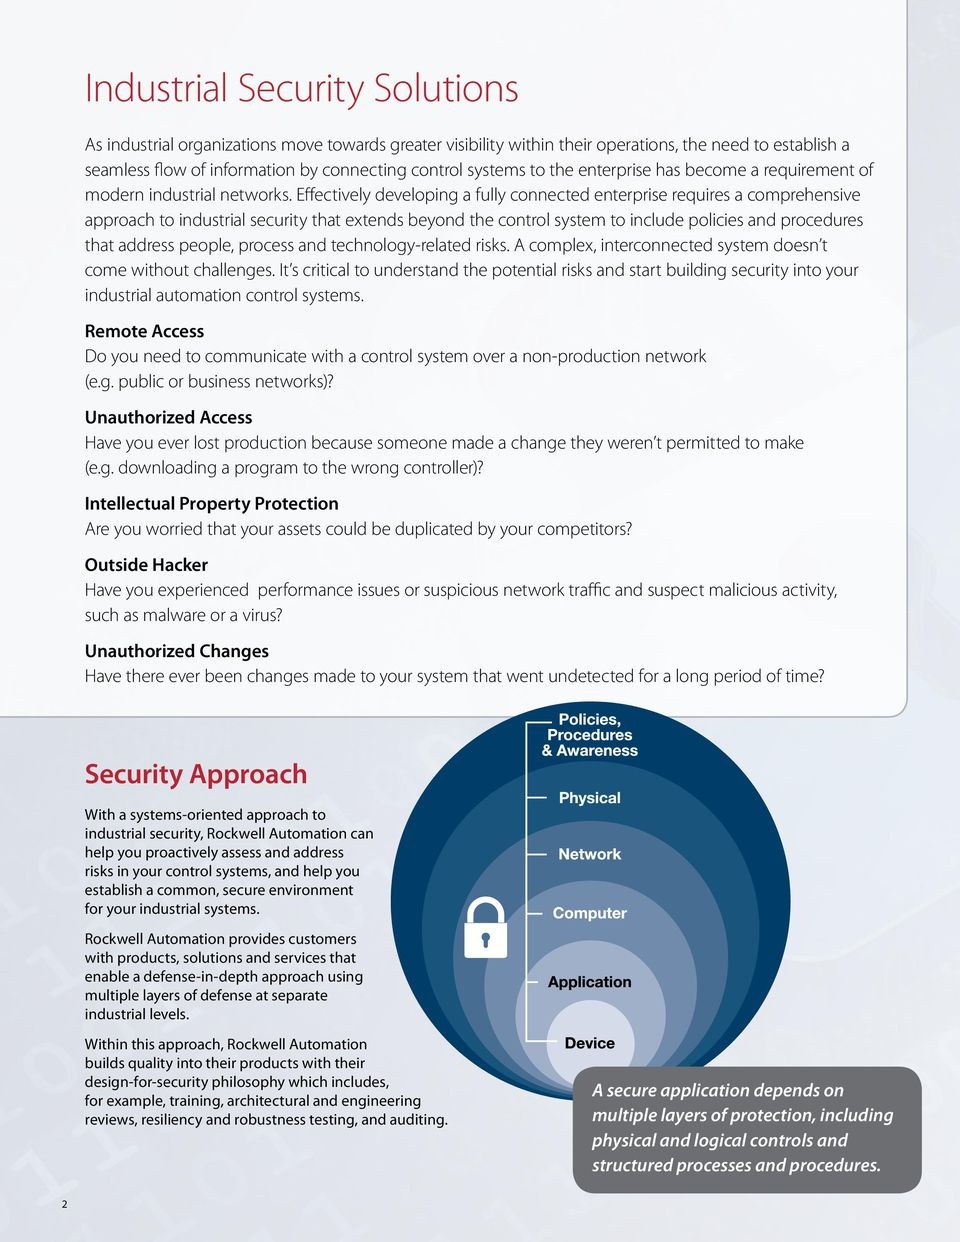 Effectively developing a fully connected enterprise requires a comprehensive approach to industrial security that extends beyond the control system to include policies and procedures that address